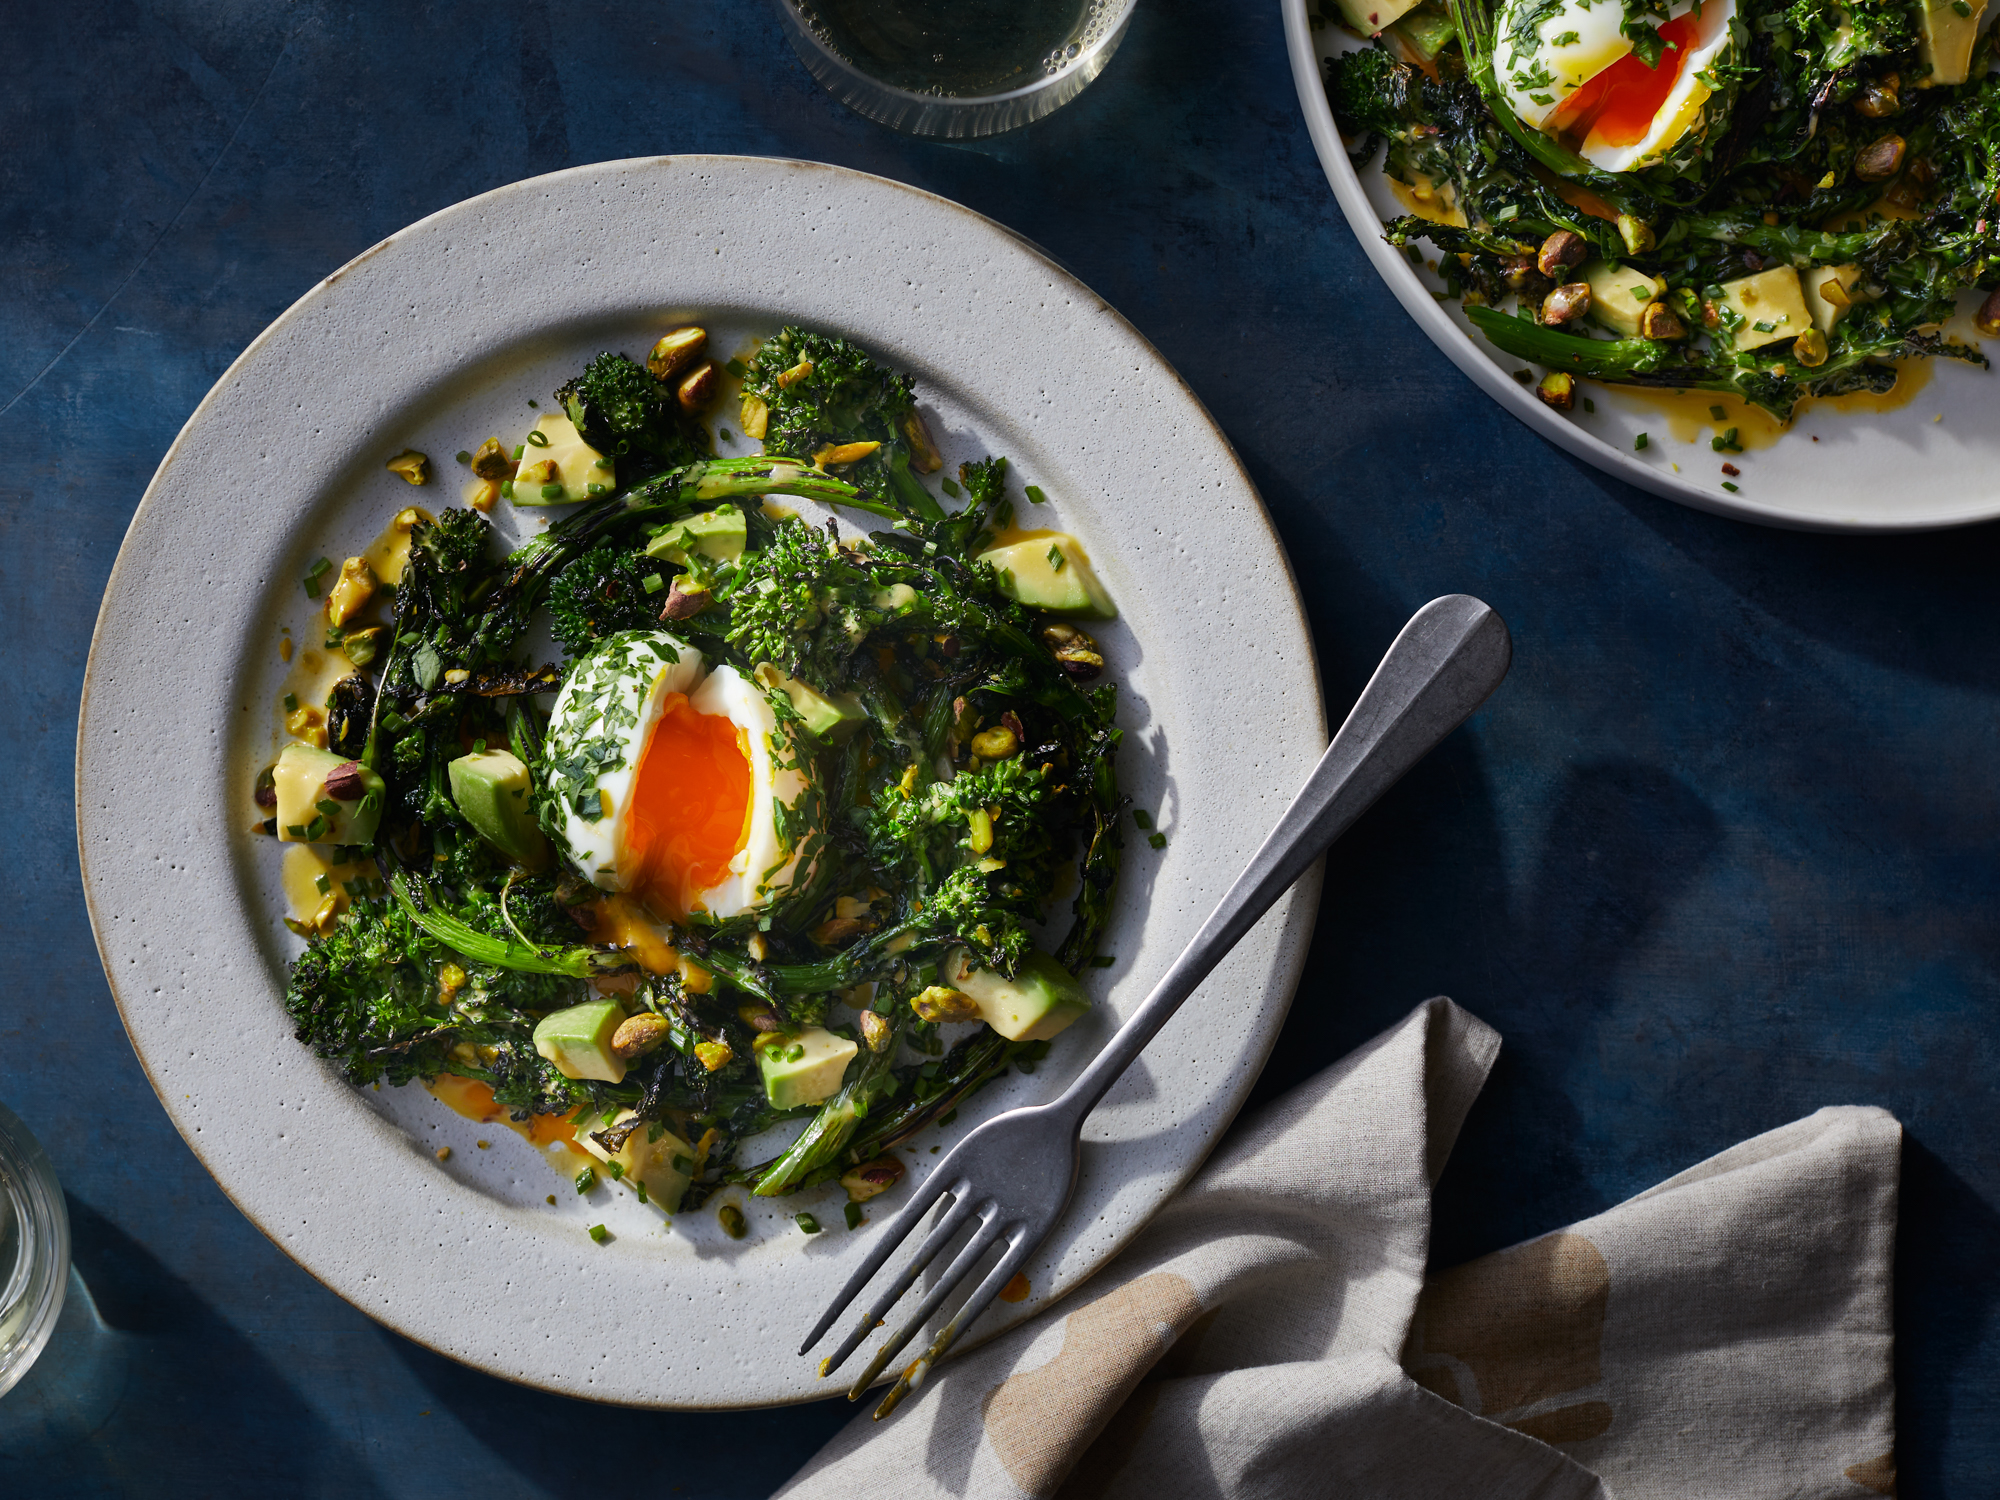 Broccoli Rabe and Avocado Salad with Lemon Dressing and Herby Molten Eggs